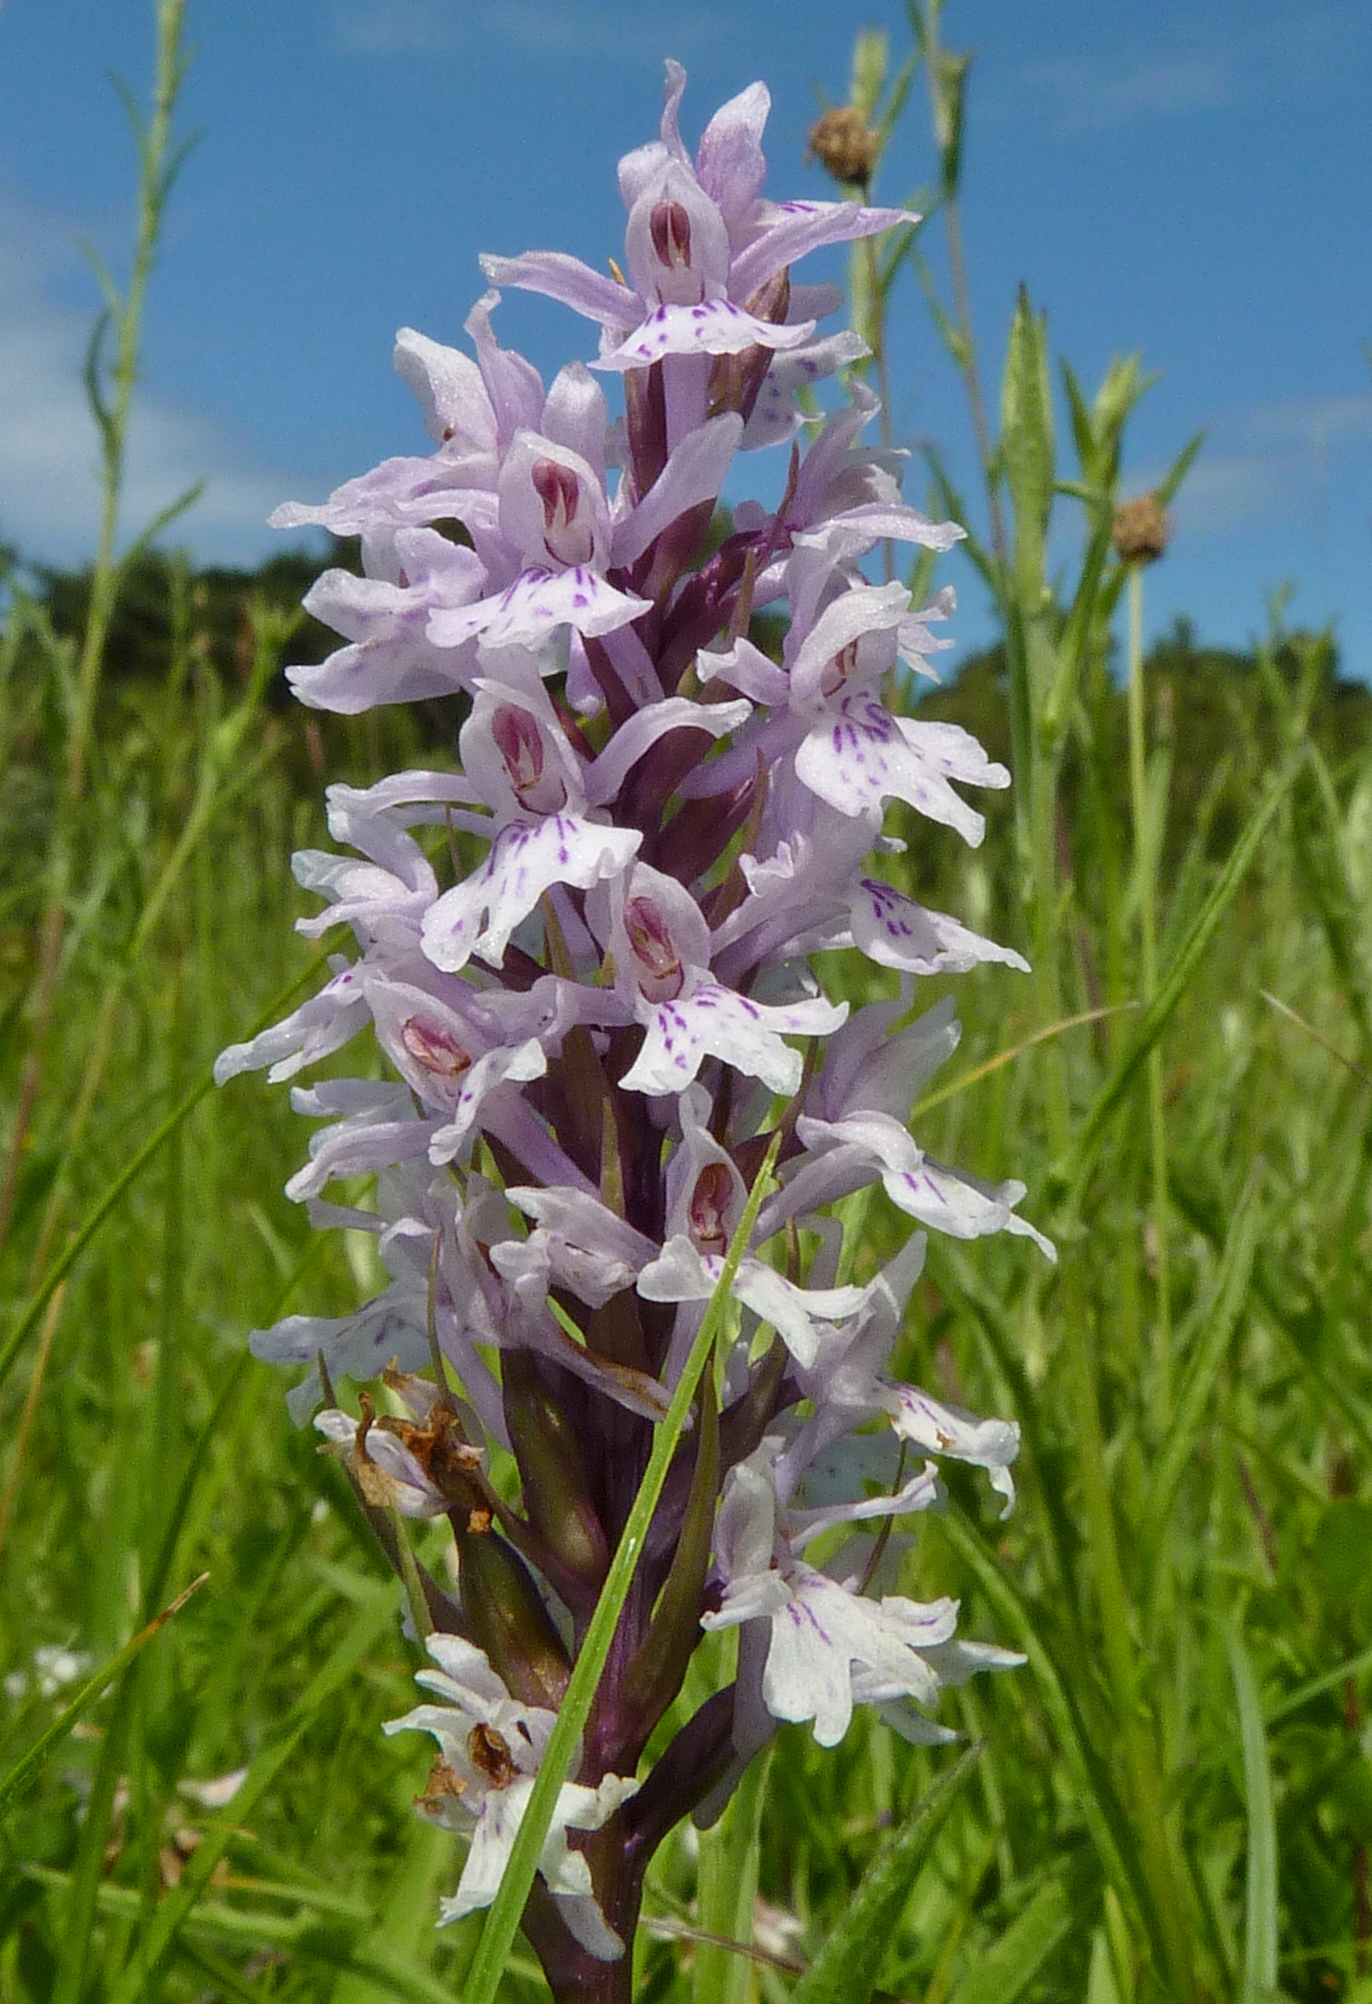 NaturePlus: Seen any good orchids lately?